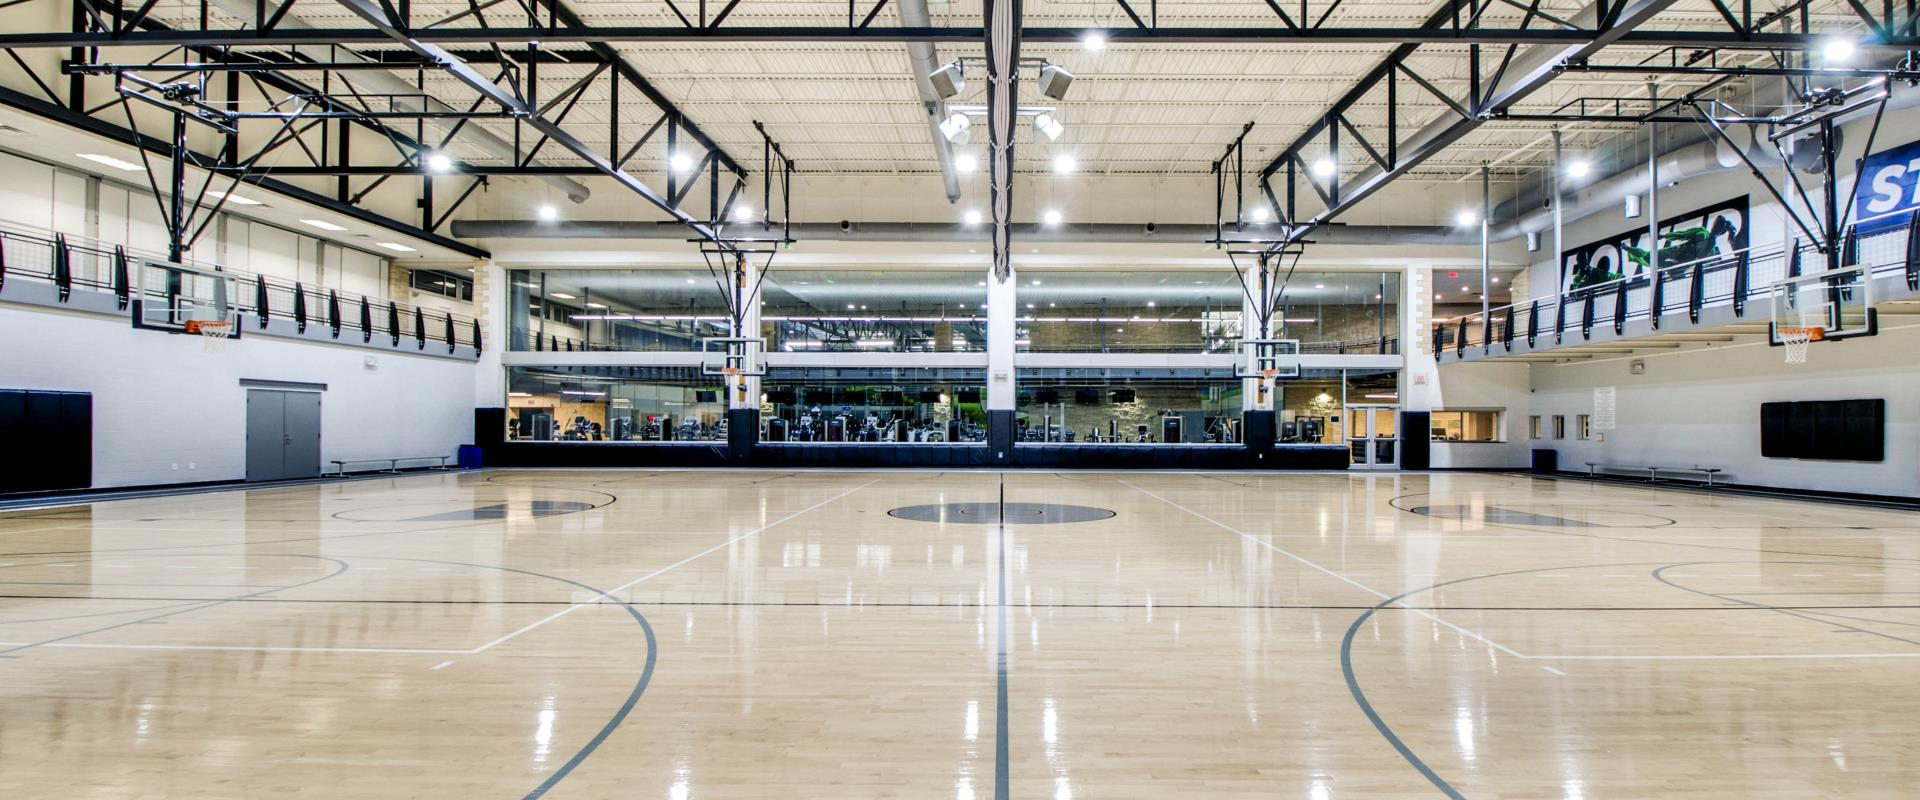 Indoor Basketball Gym